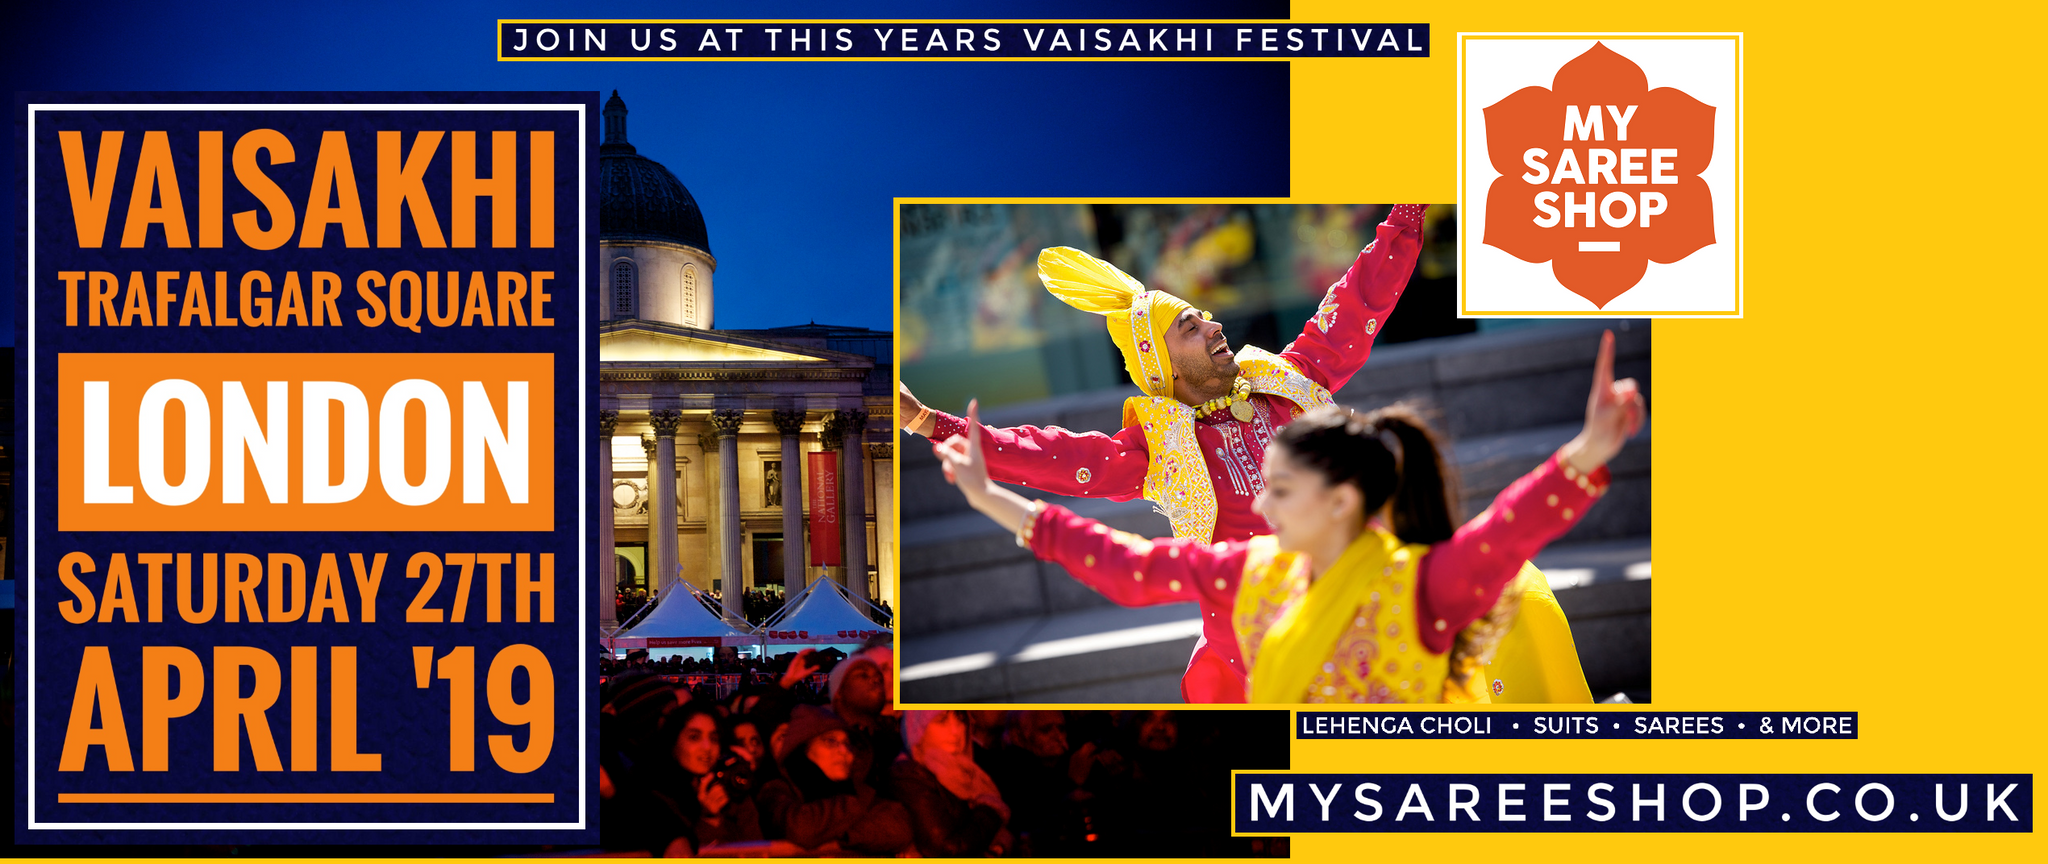 Celebrate Vaisakhi with MySareeShop.co.uk at London, Trafalgar Square (April 2019)